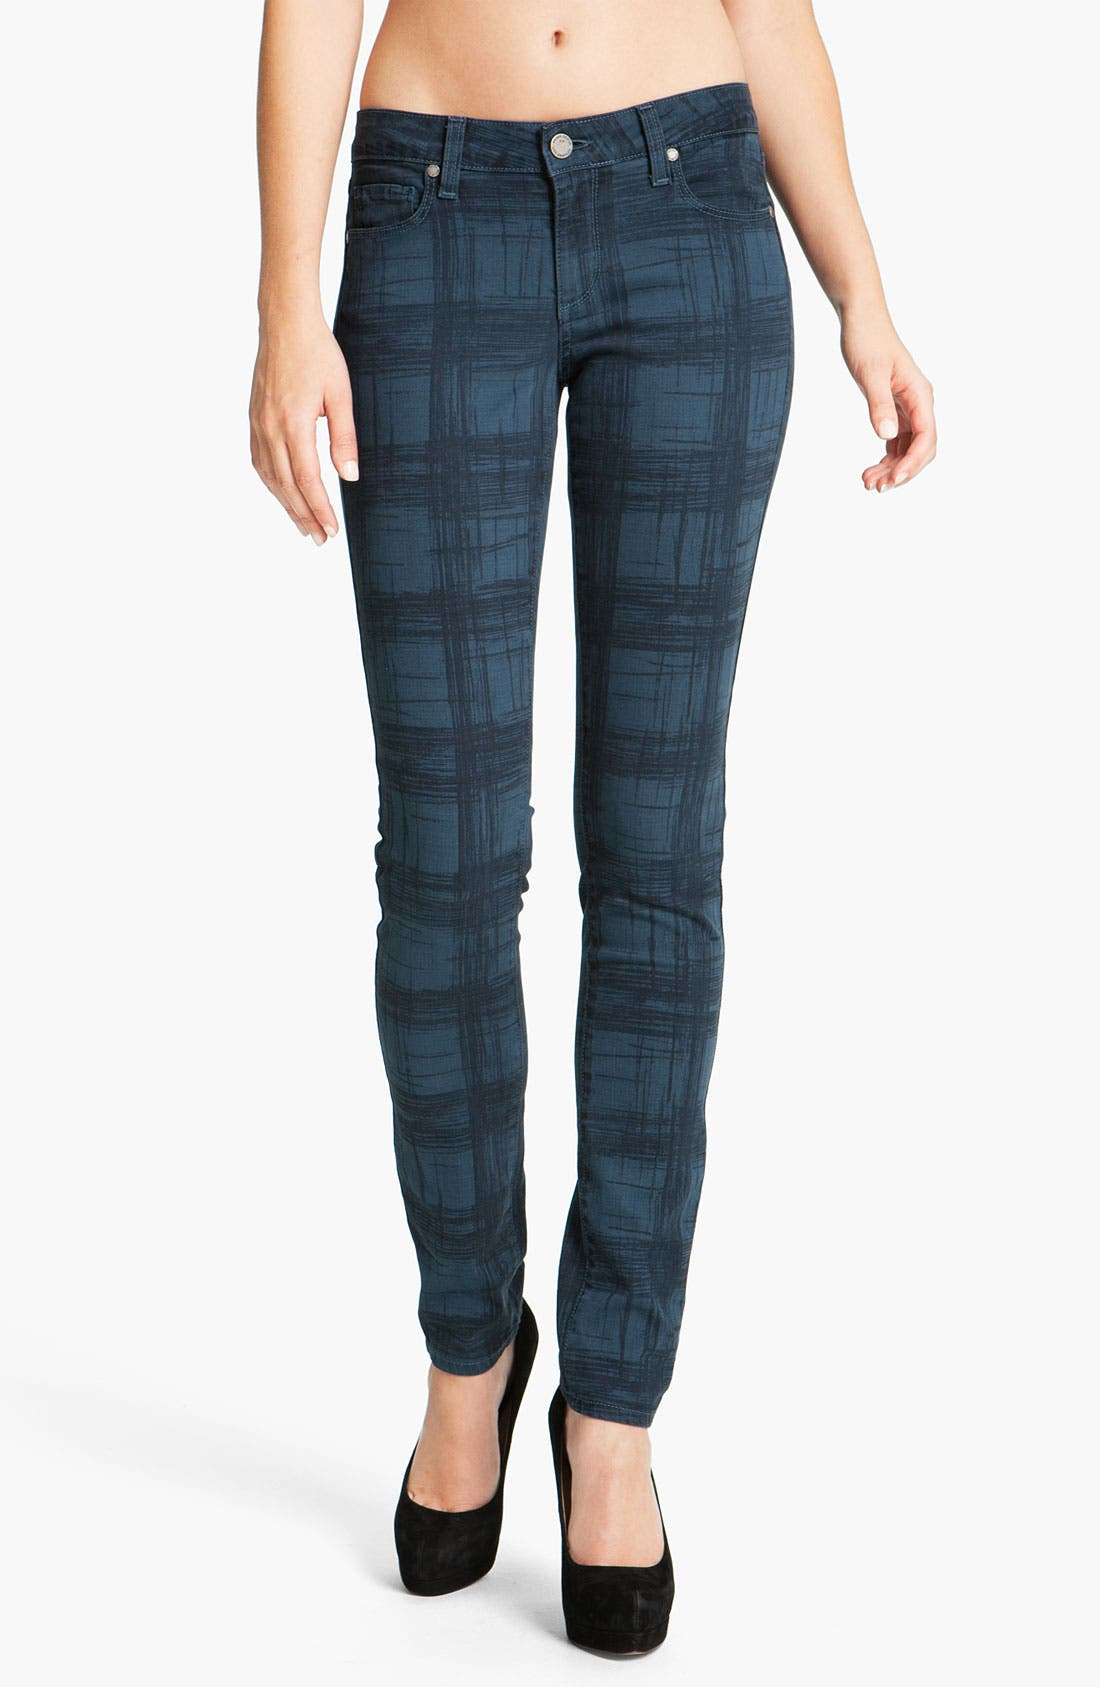 Alternate Image 1 Selected - Paige Denim 'Verdugo' Skinny Jeans (Preppy)